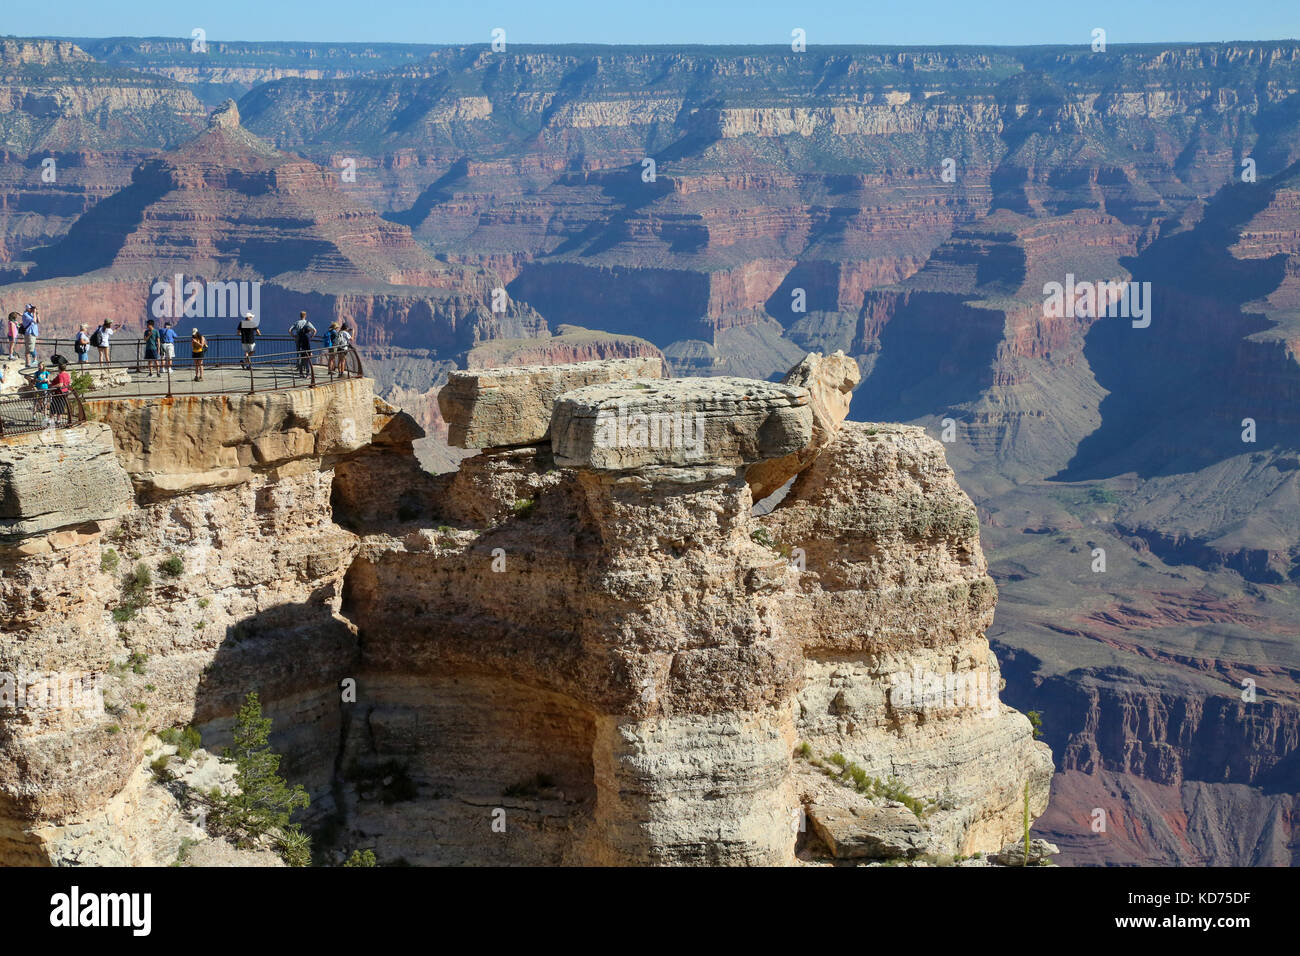 Tourists atop observation area on south rim of Grand Canyon - Stock Image